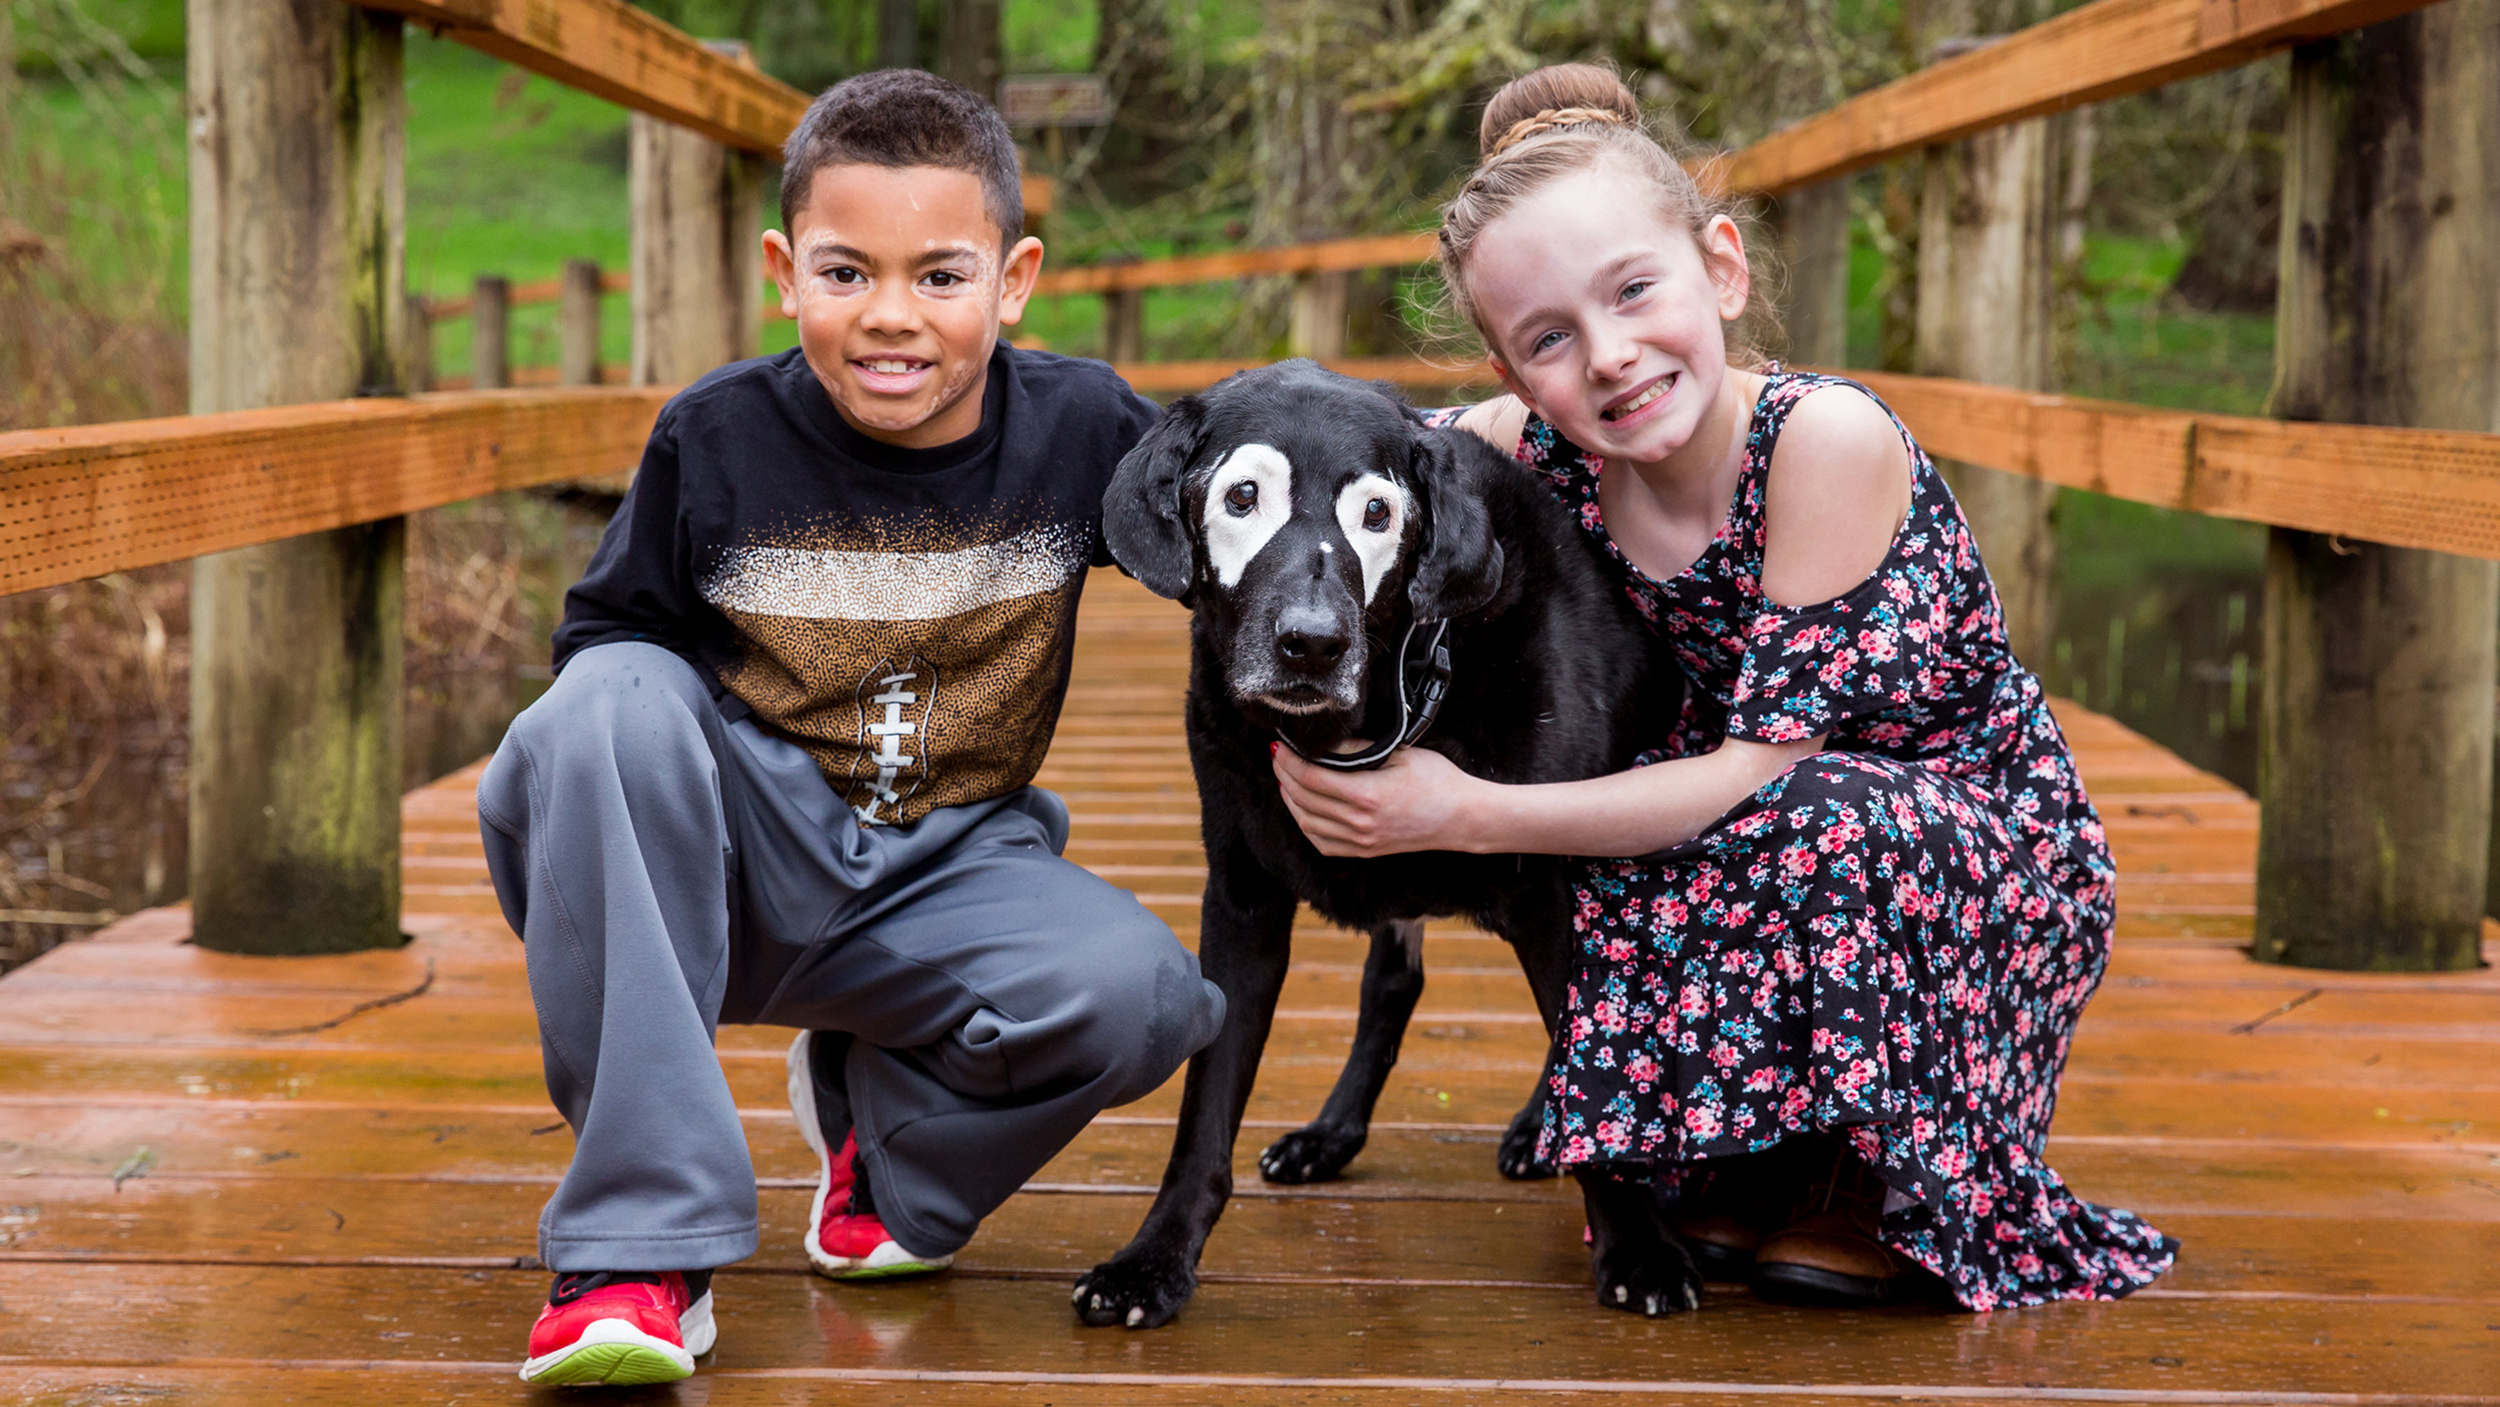 Dog With Vitiligo Meets Kids With The Condition